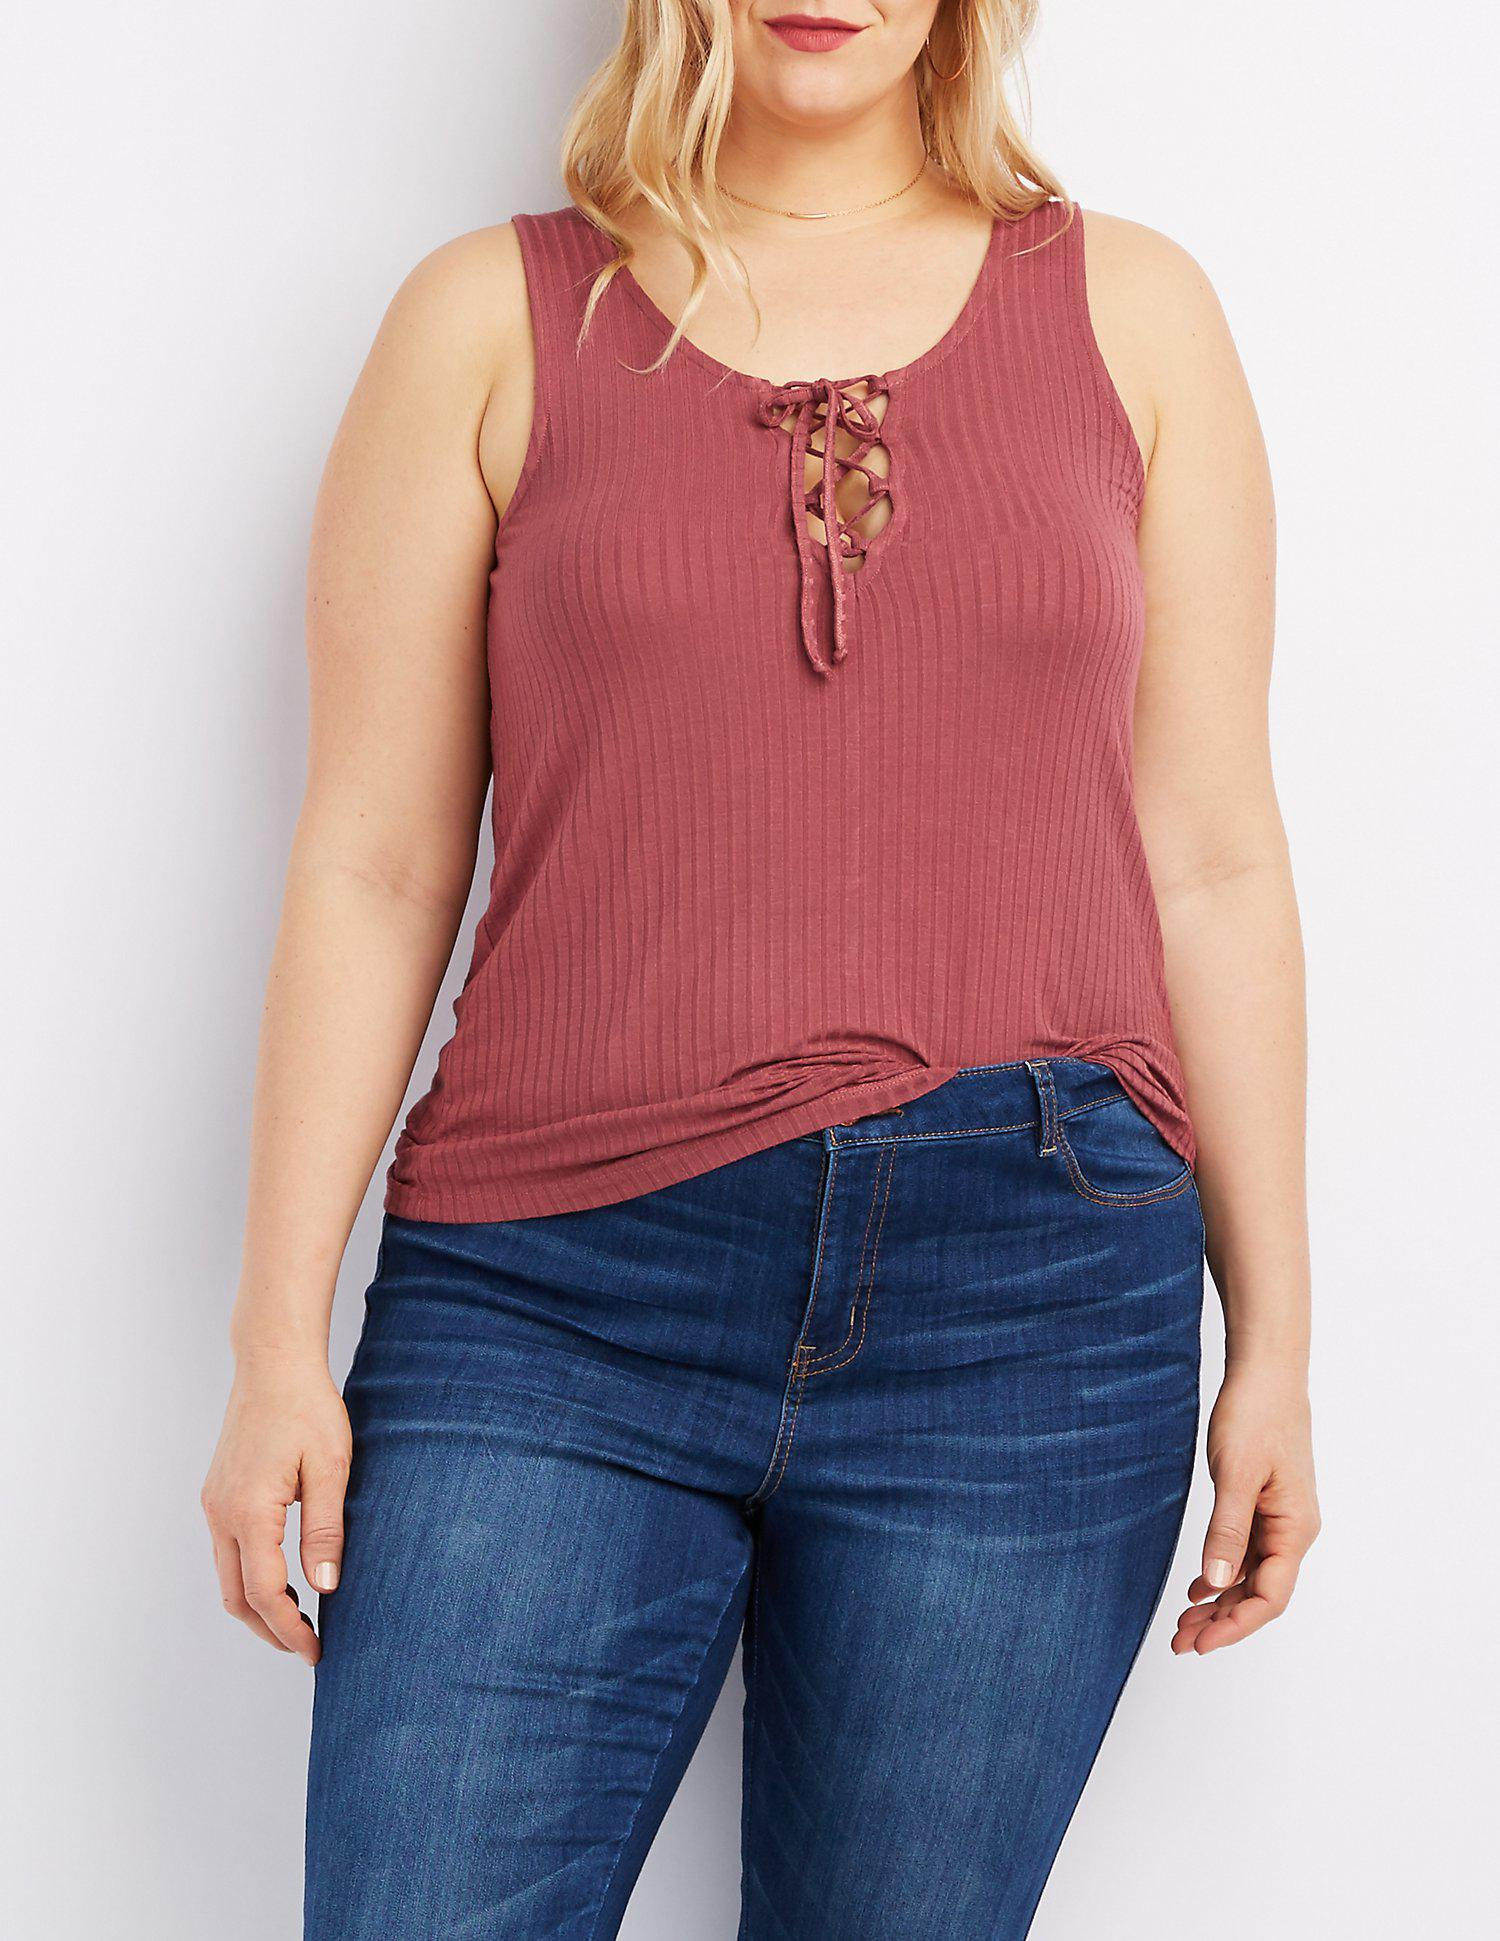 636d29d701 Lyst - Charlotte Russe Plus Size Ribbed Lace-up Tank Top